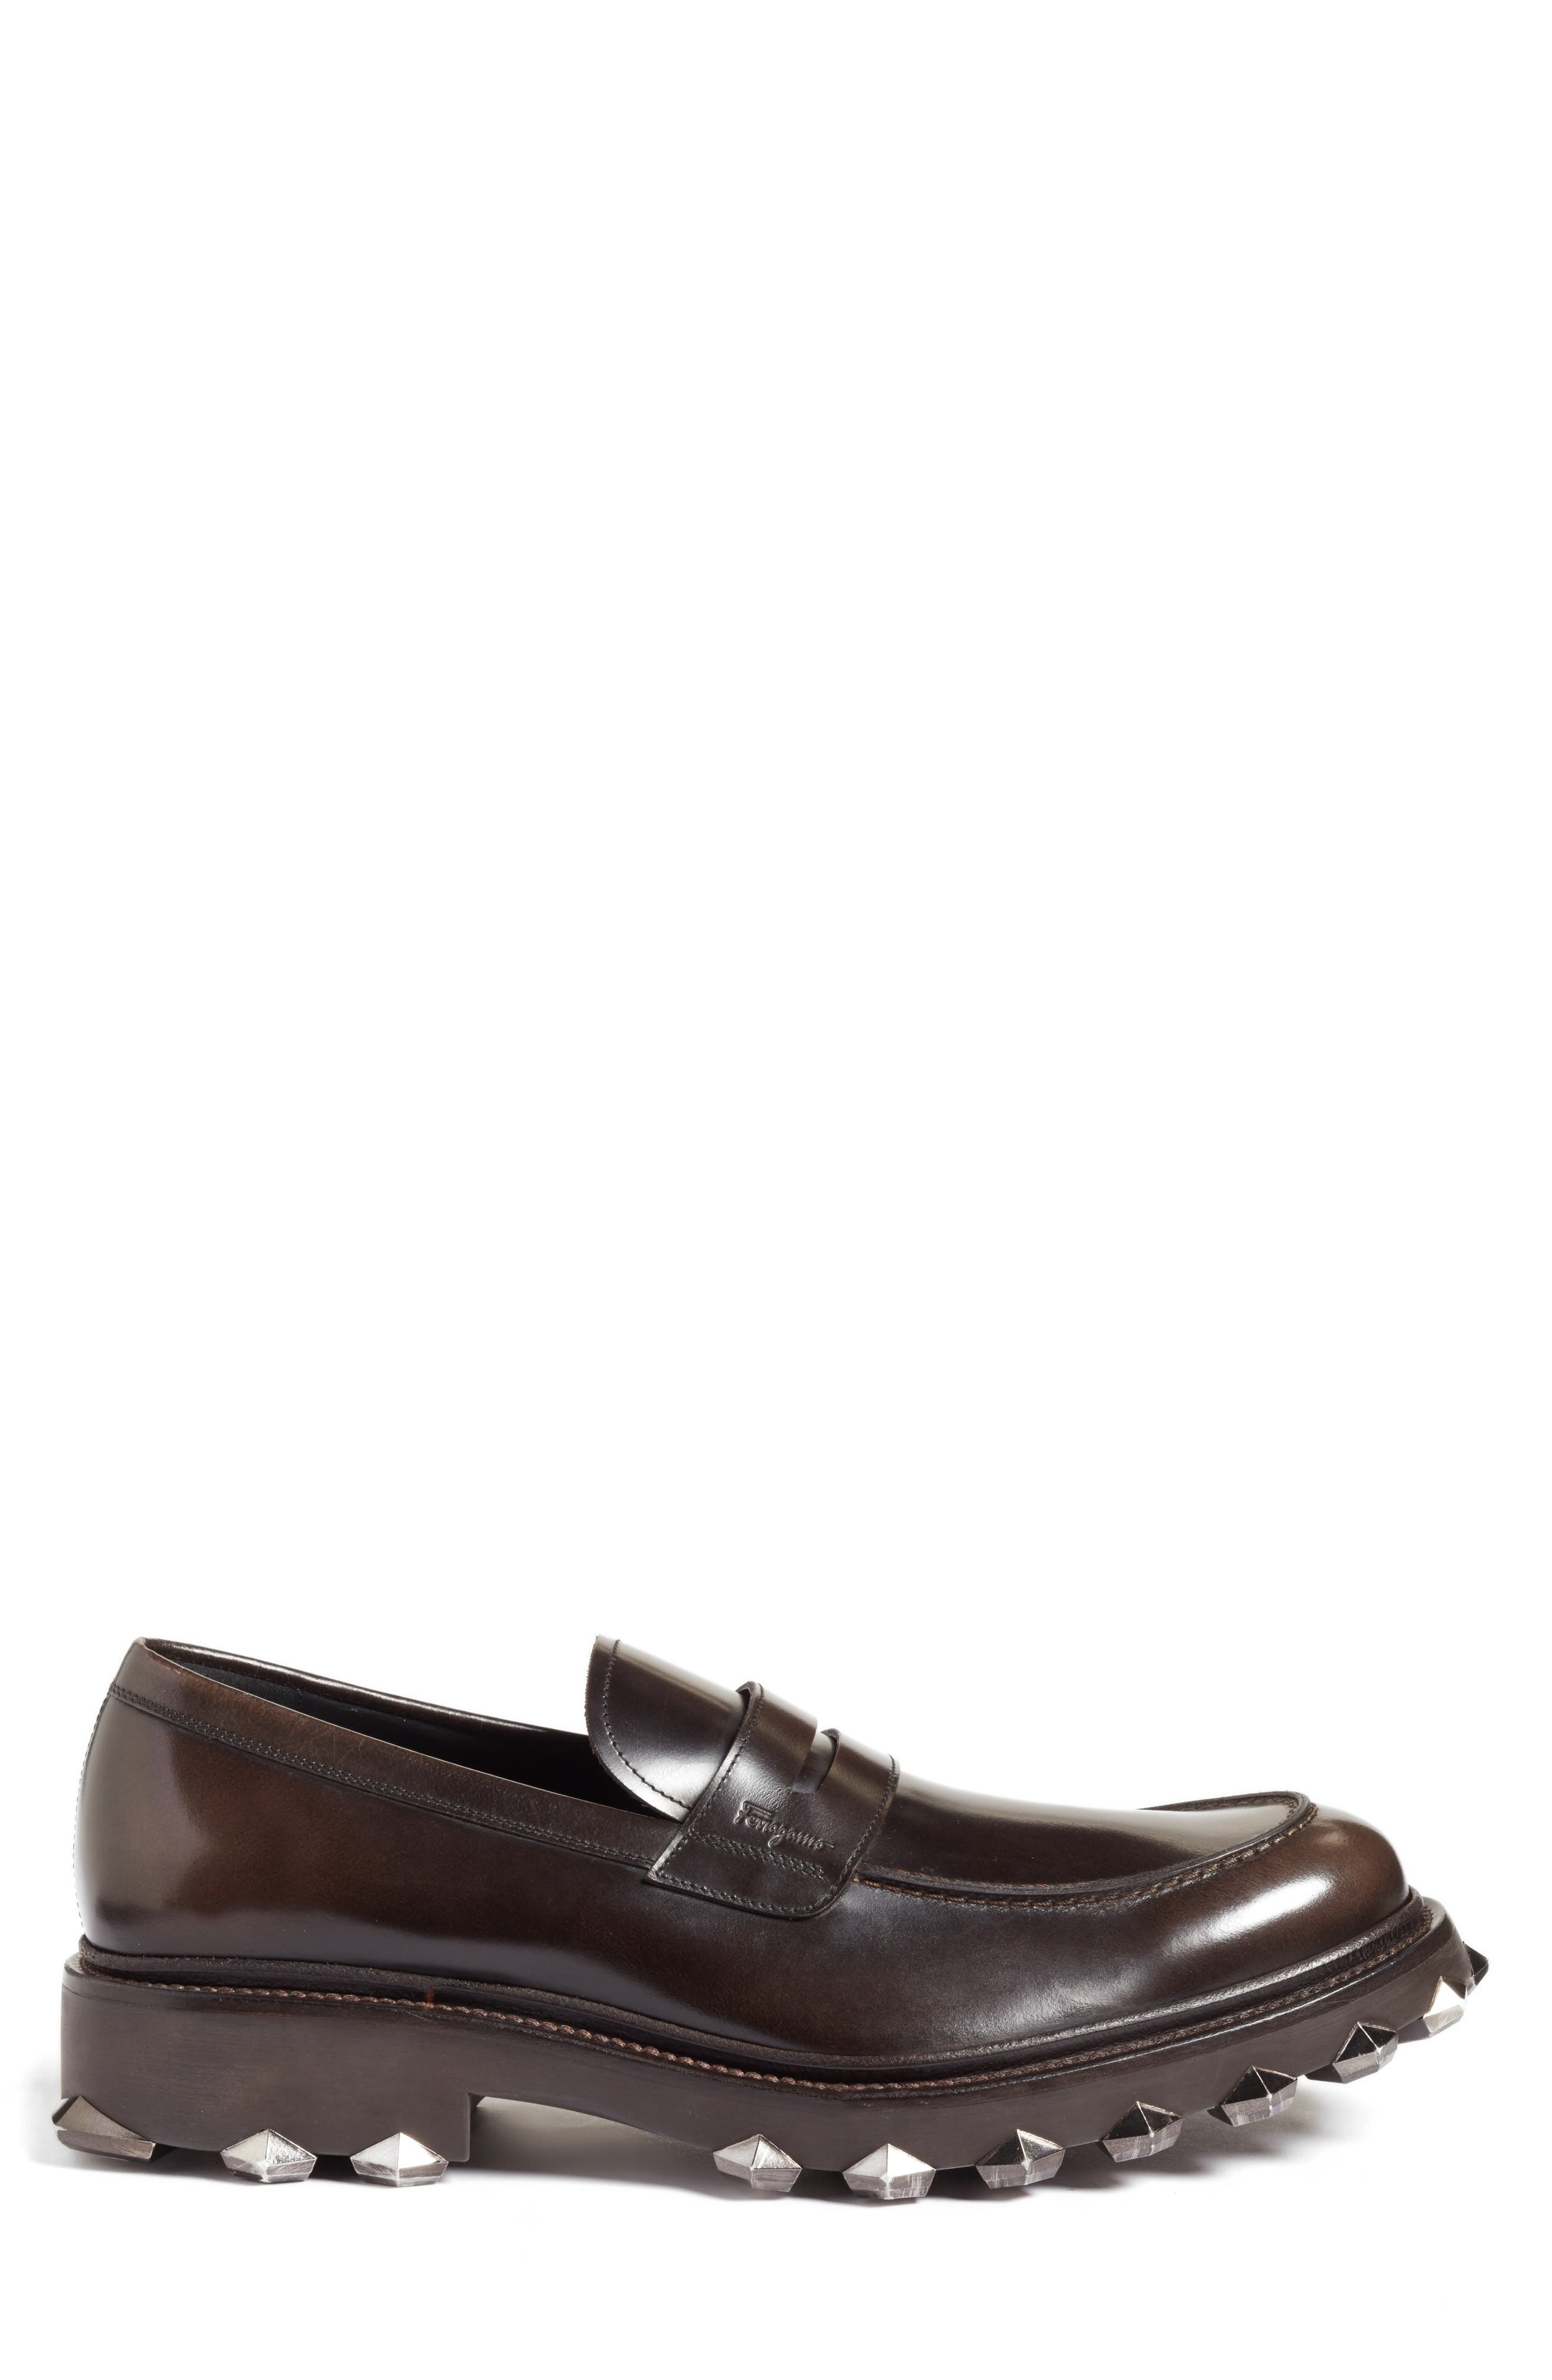 Penny Loafer,                             Alternate thumbnail 3, color,                             024